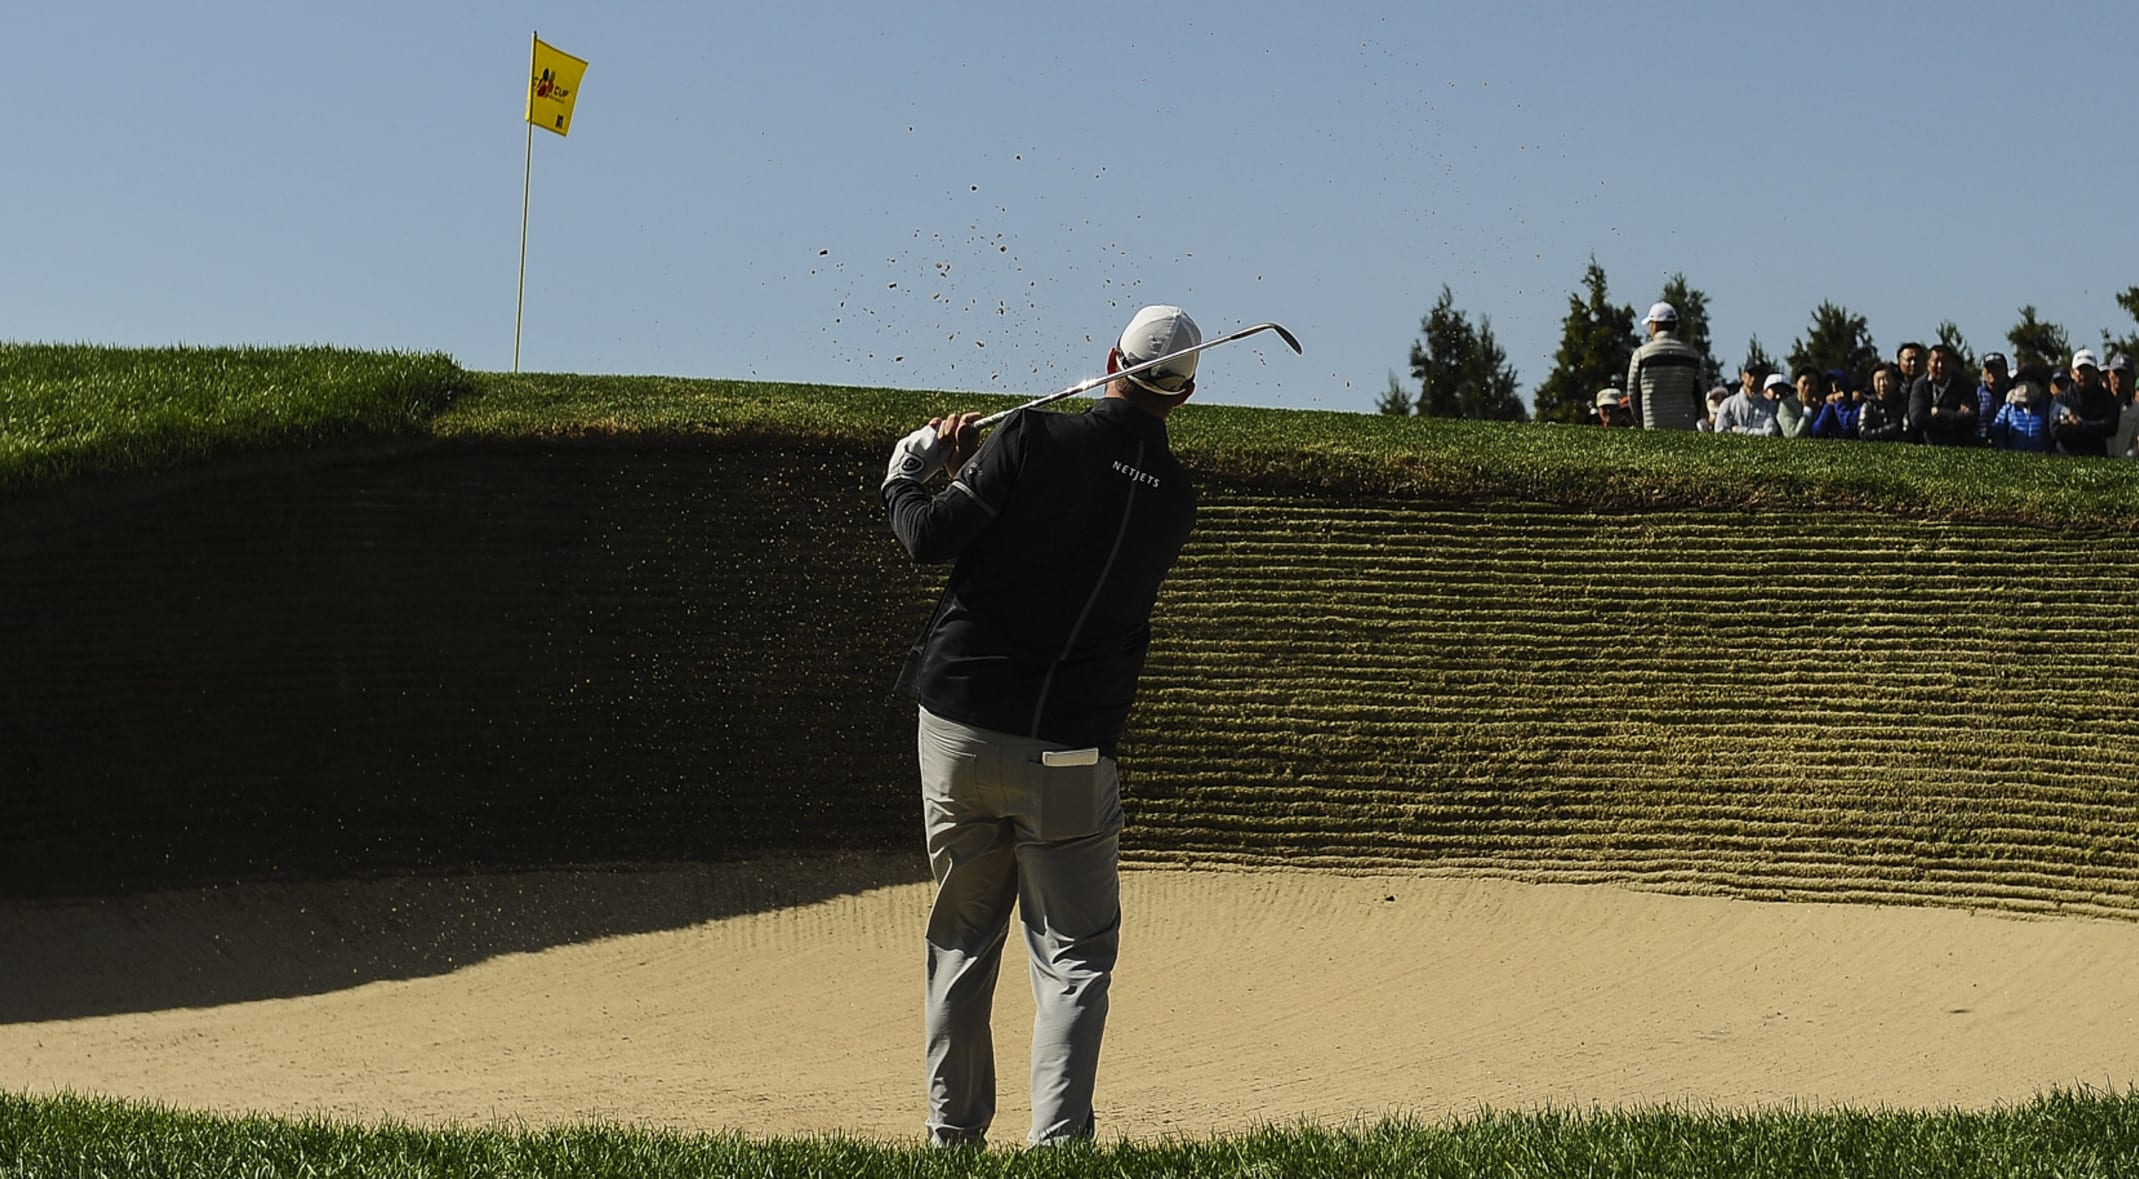 The short game is a tall task at CJ CUP